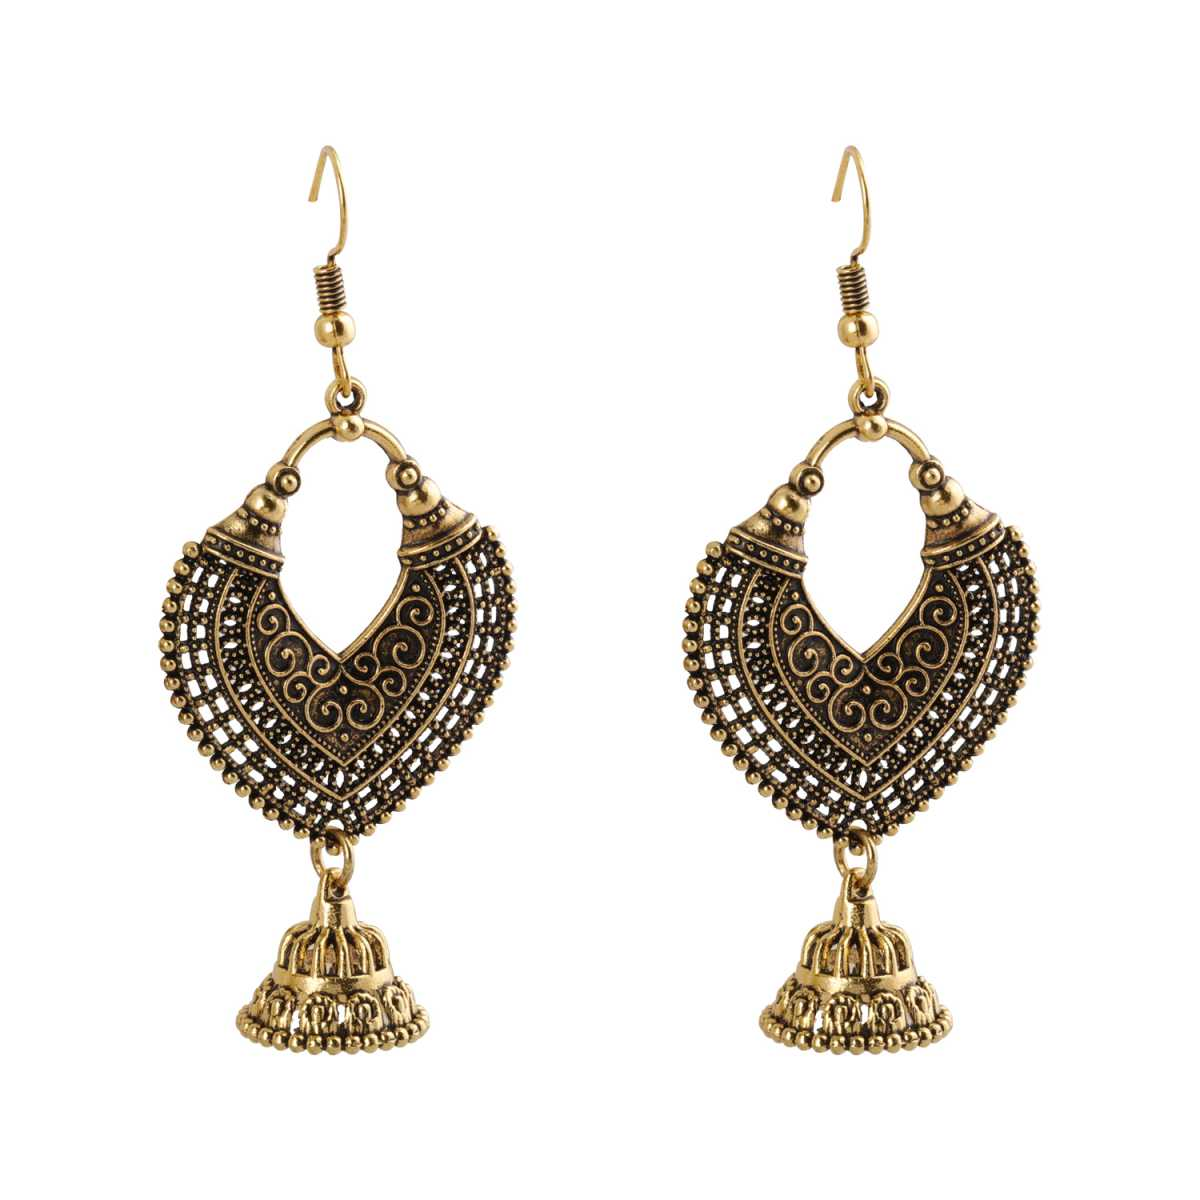 Silver Shine Shimmering Unique Arabic Design Golden Earrings for Women